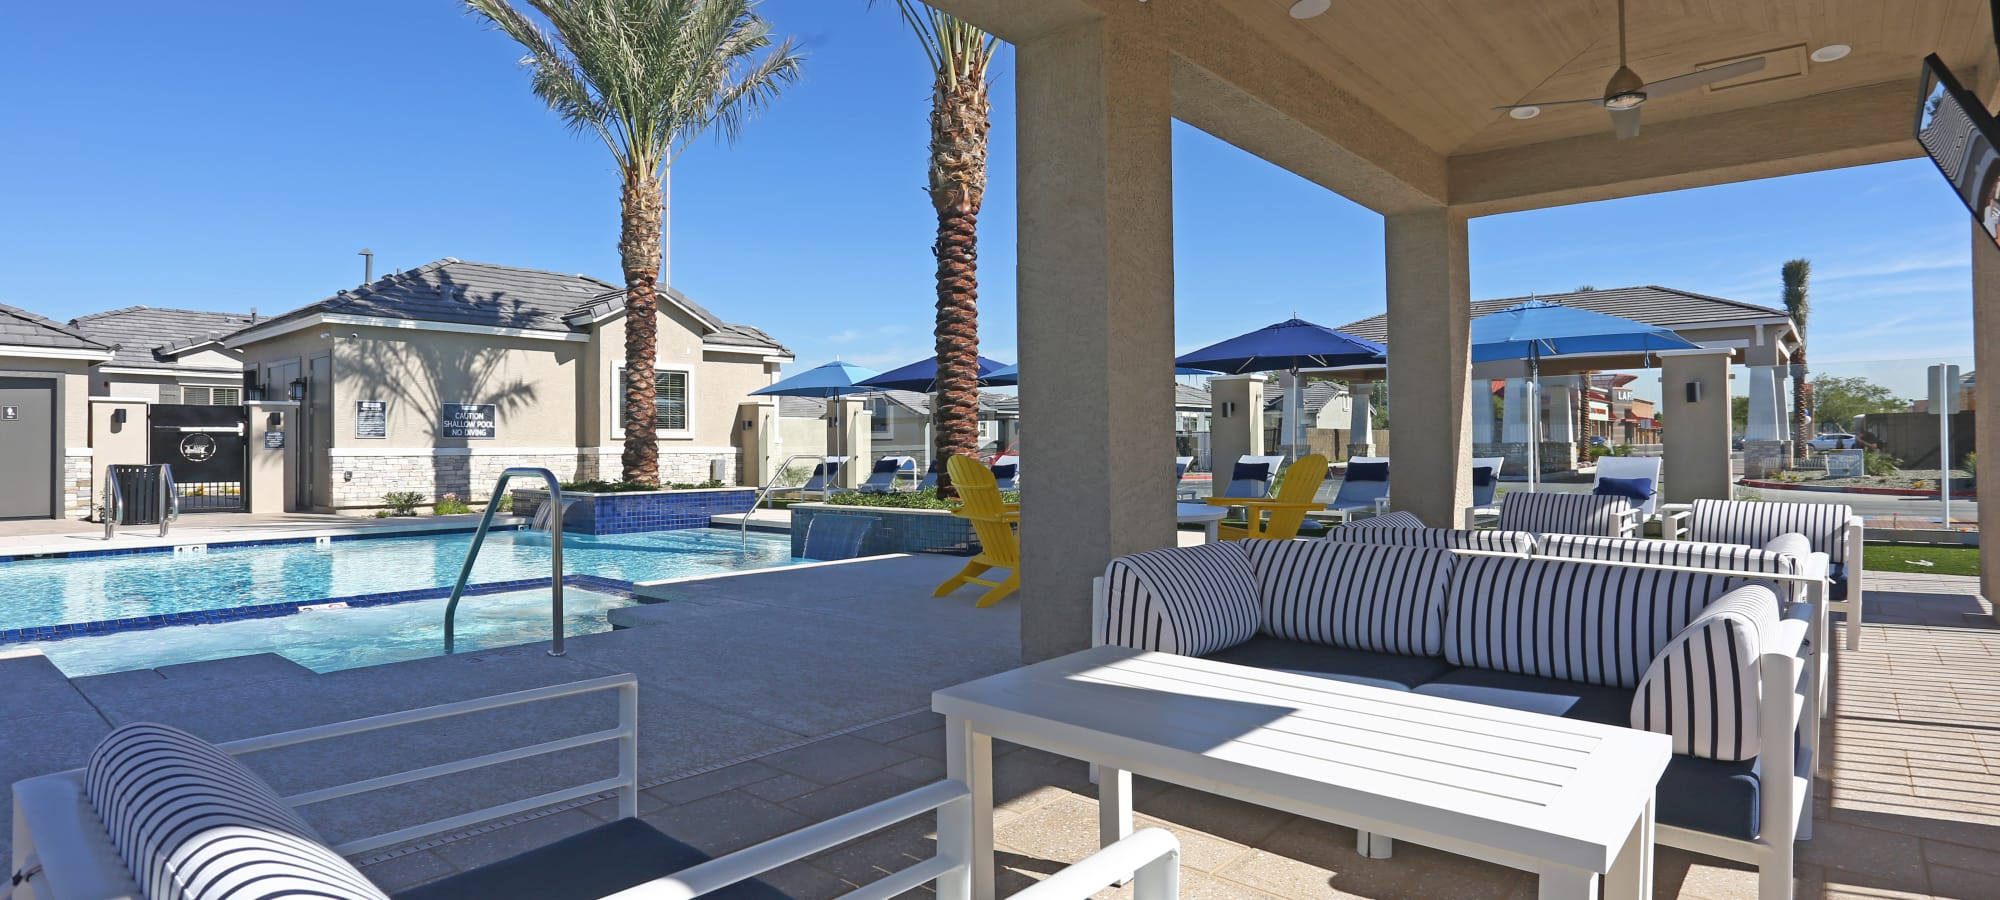 Lounge seating near the pool at Christopher Todd Communities At Stadium in Glendale, Arizona